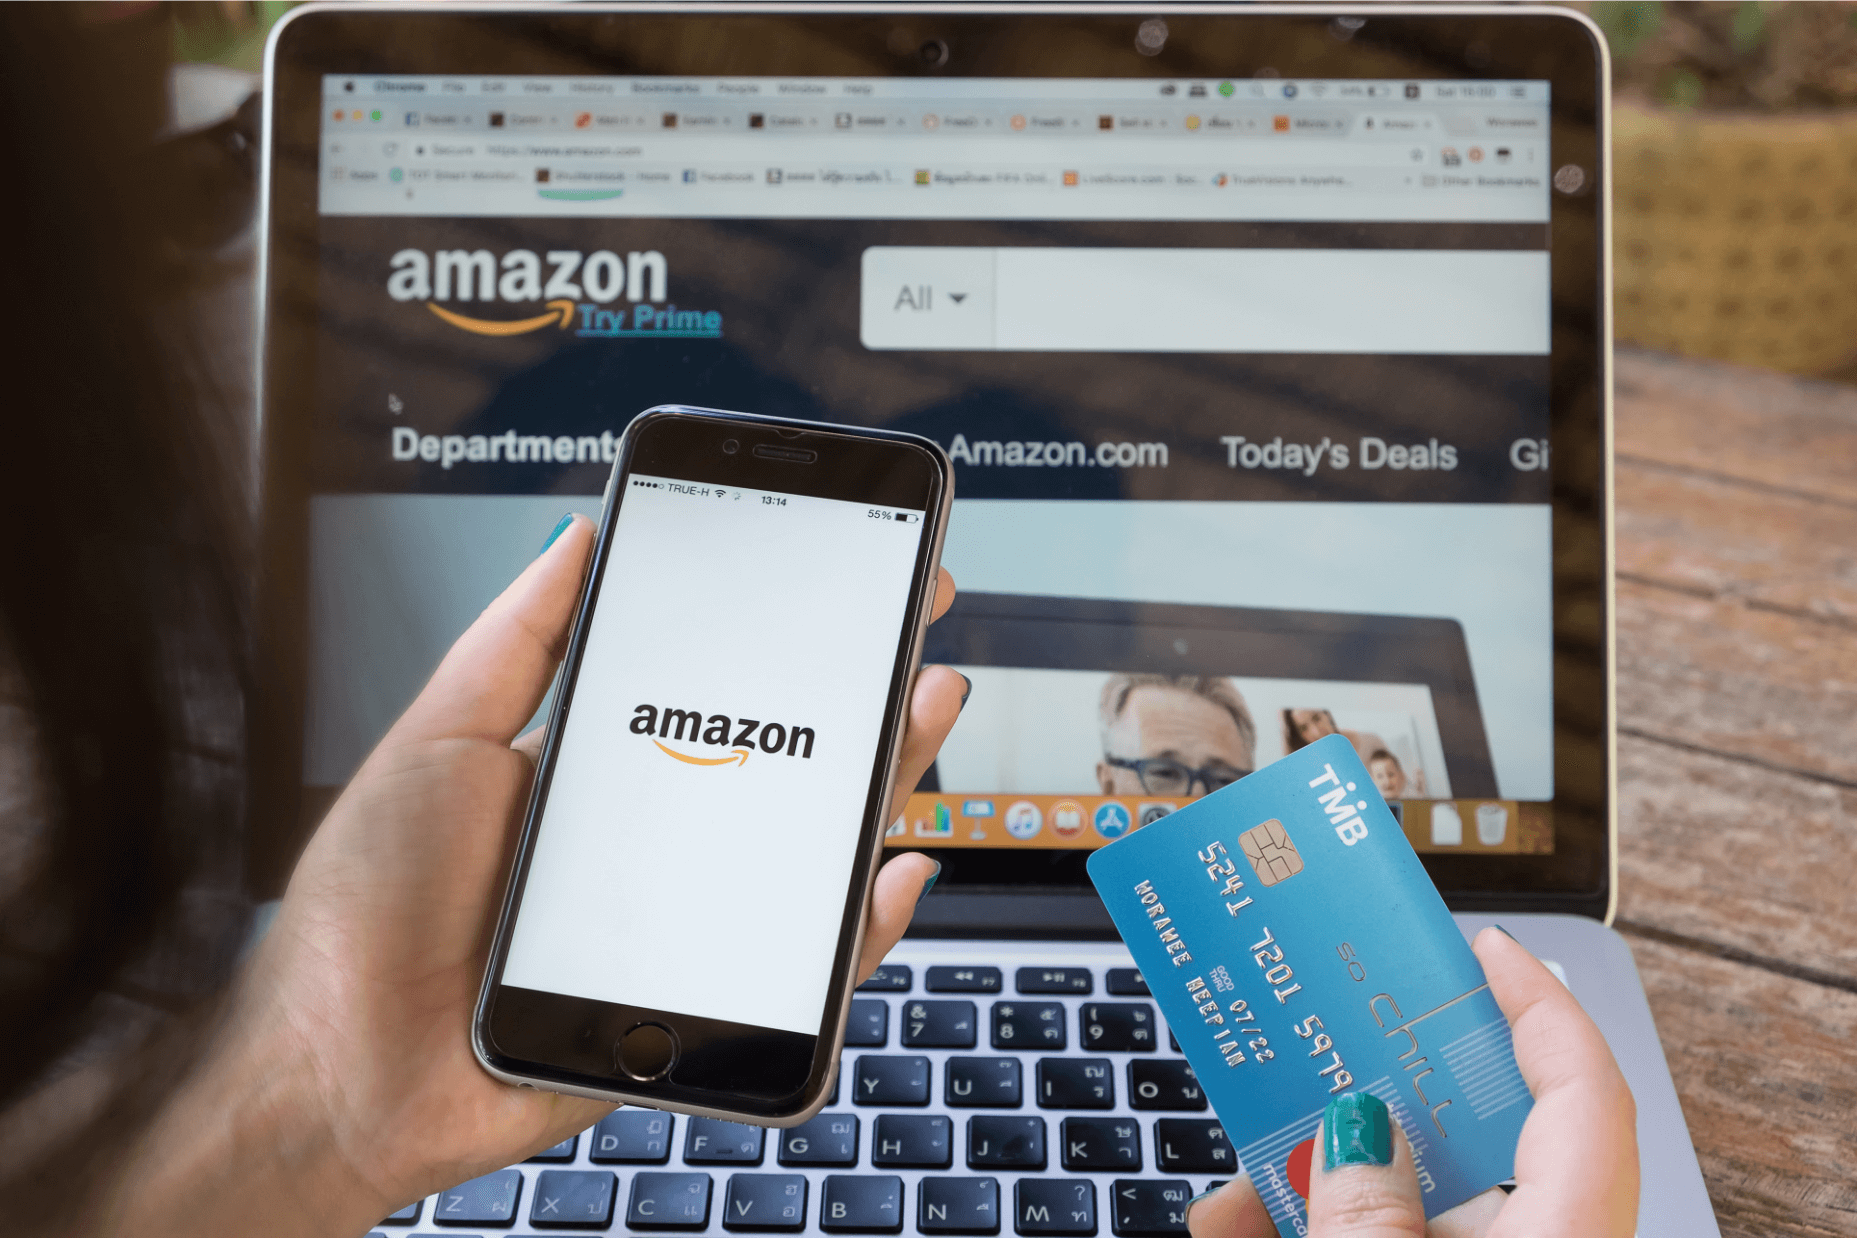 Can I Use Prepaid Cards On Amazon